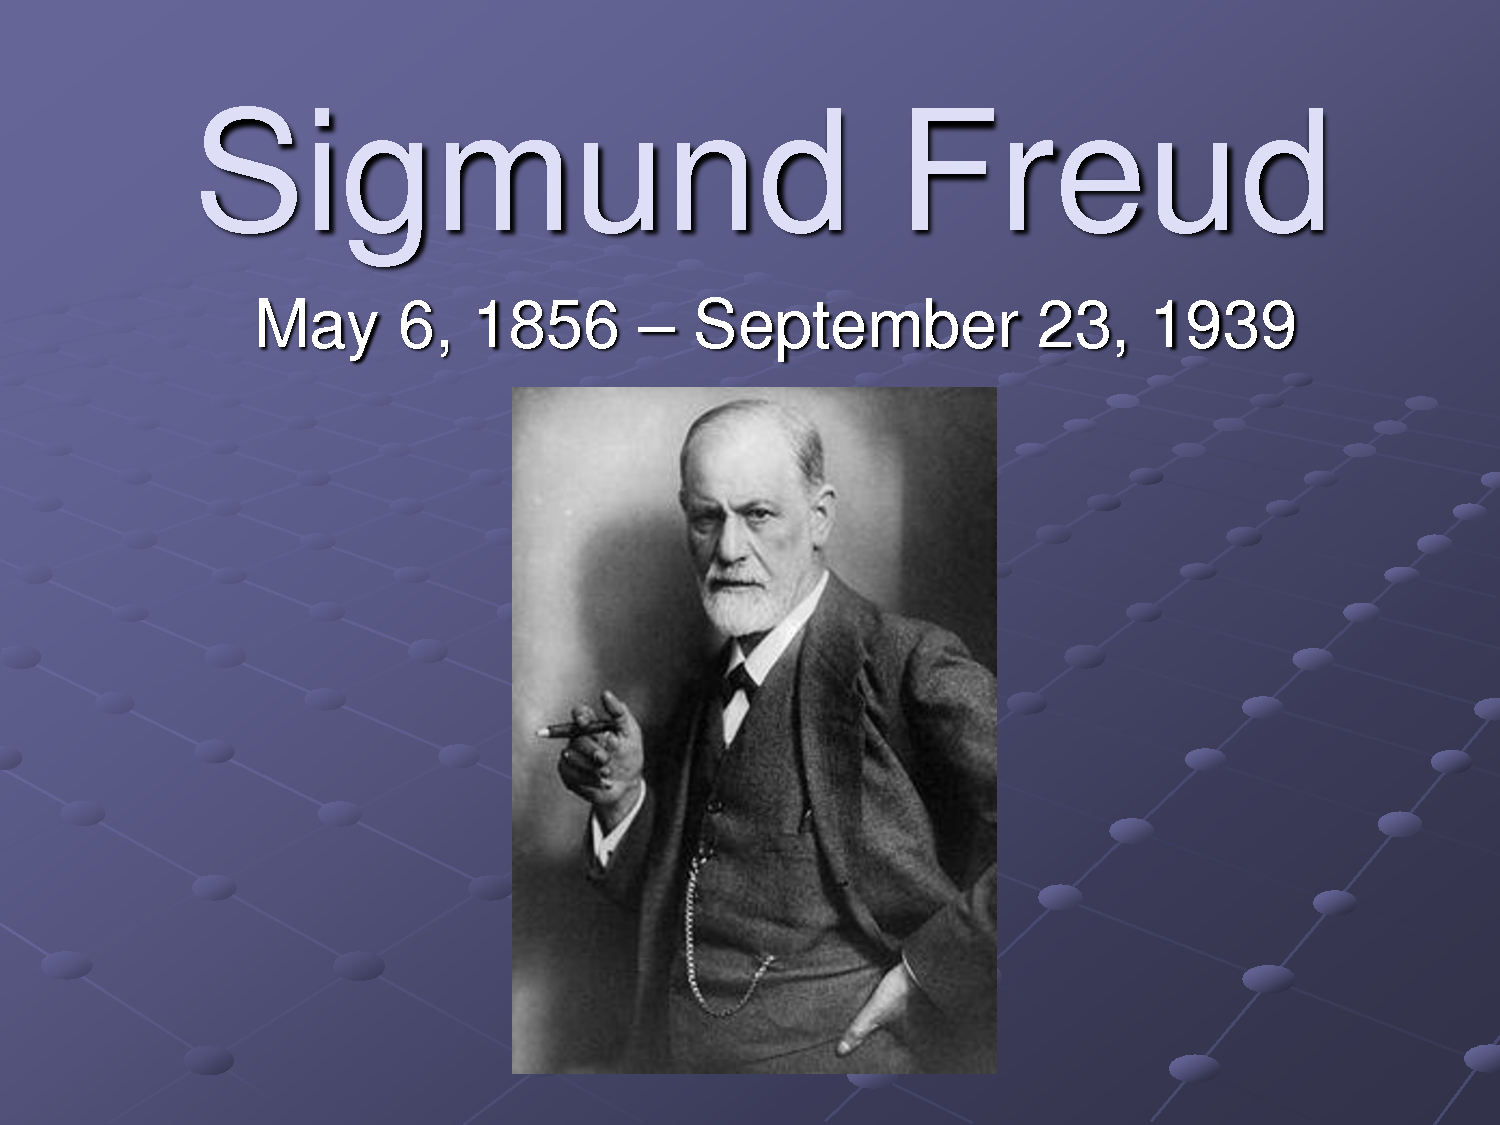 a biography of sigmund freud the psychology